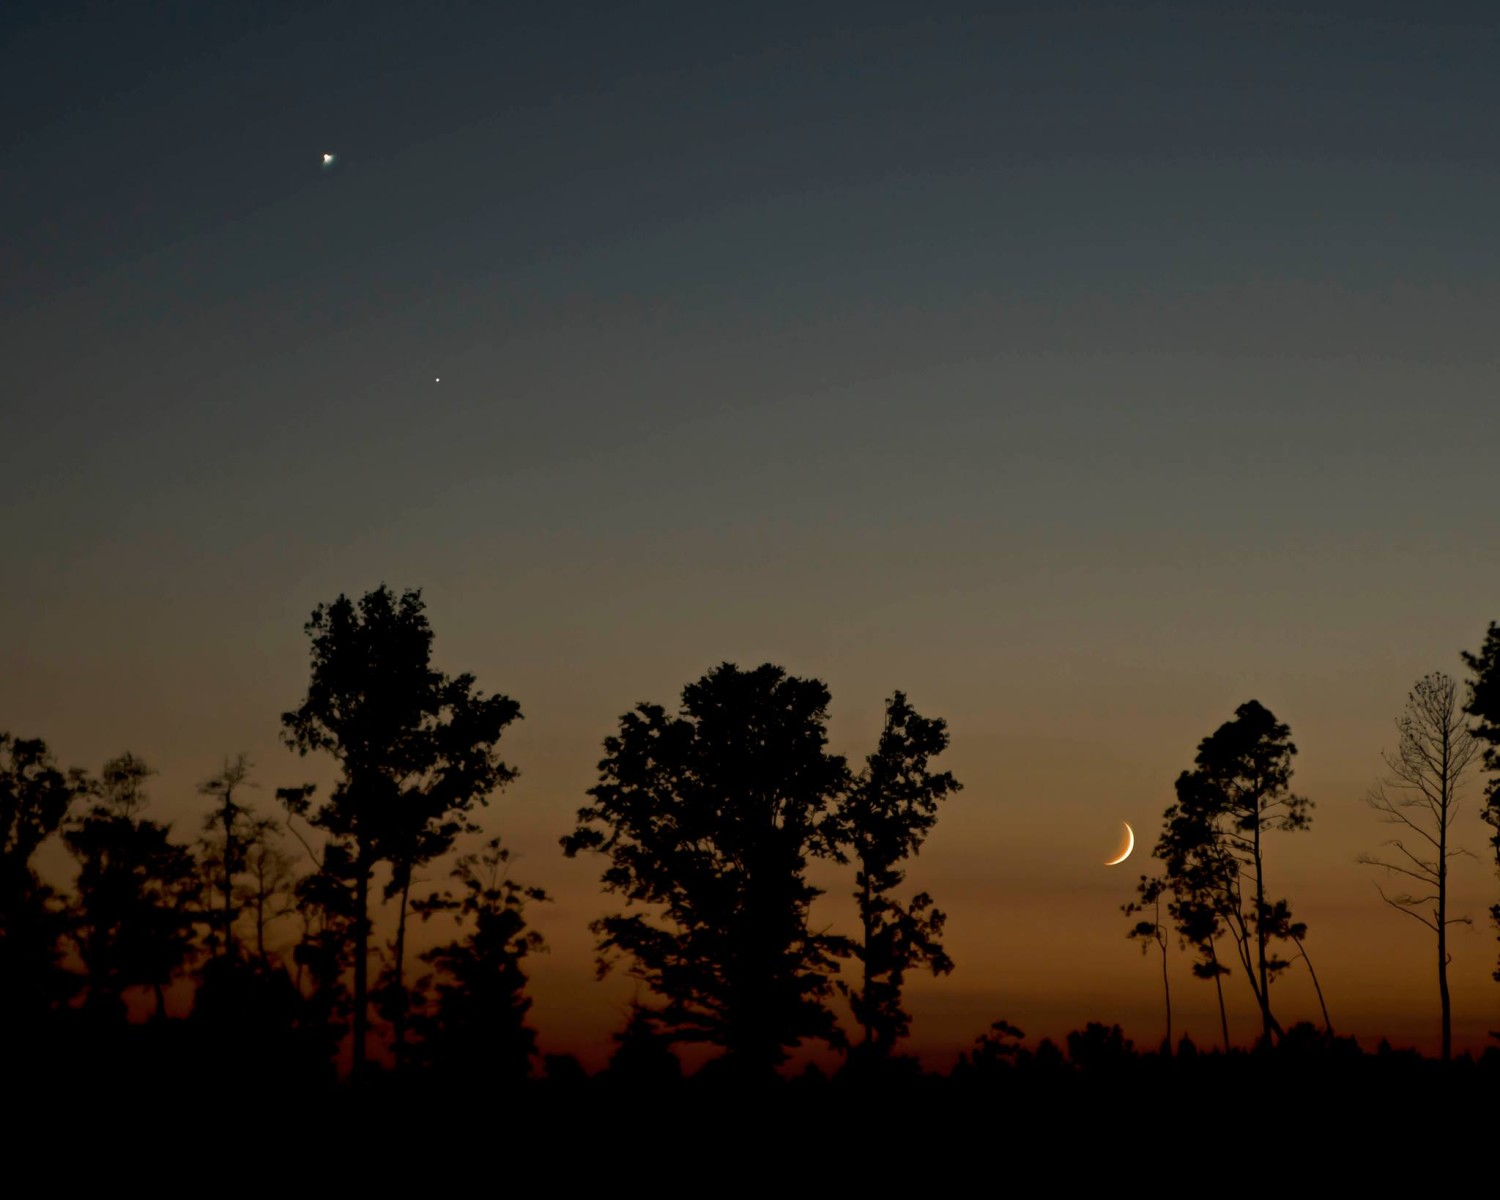 View larger. | Here are the moon and Venus last night - September 7 - as captured by EarthSky Facebook friend Ken Christison in North Carolina. Thank you, Ken! On Sunday evening - September 8 - the moon will appear much closer to Venus. The Americas, in particular, will get a dramatically close view of the pair.